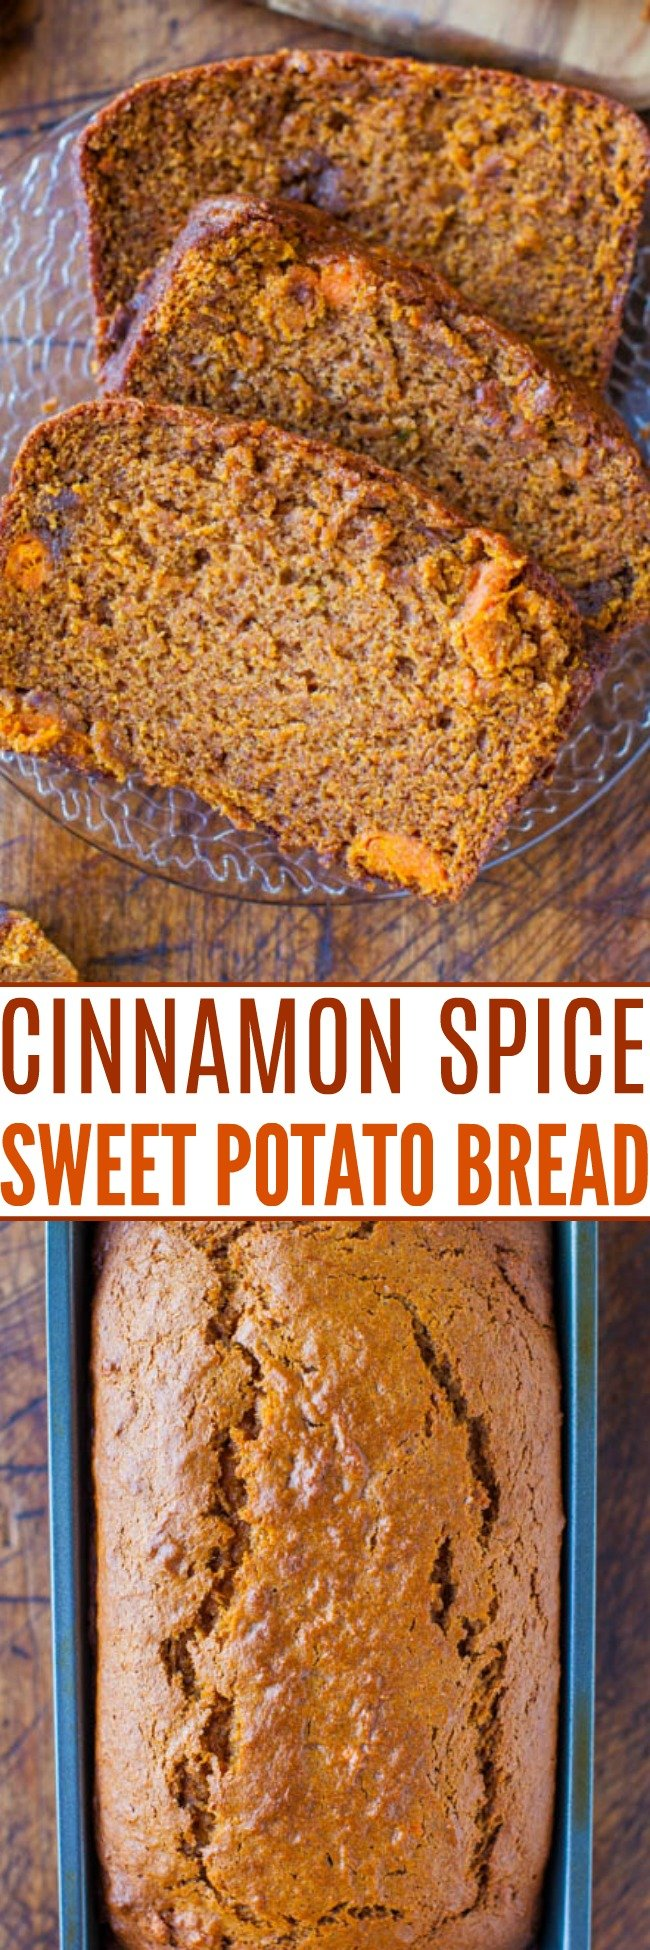 Cinnamon and Spice Sweet Potato Bread — Sweet potatoes do a wonderful job of keeping this bread extremely soft and moist. It's almost like cake it's so soft, springy, and bouncy!